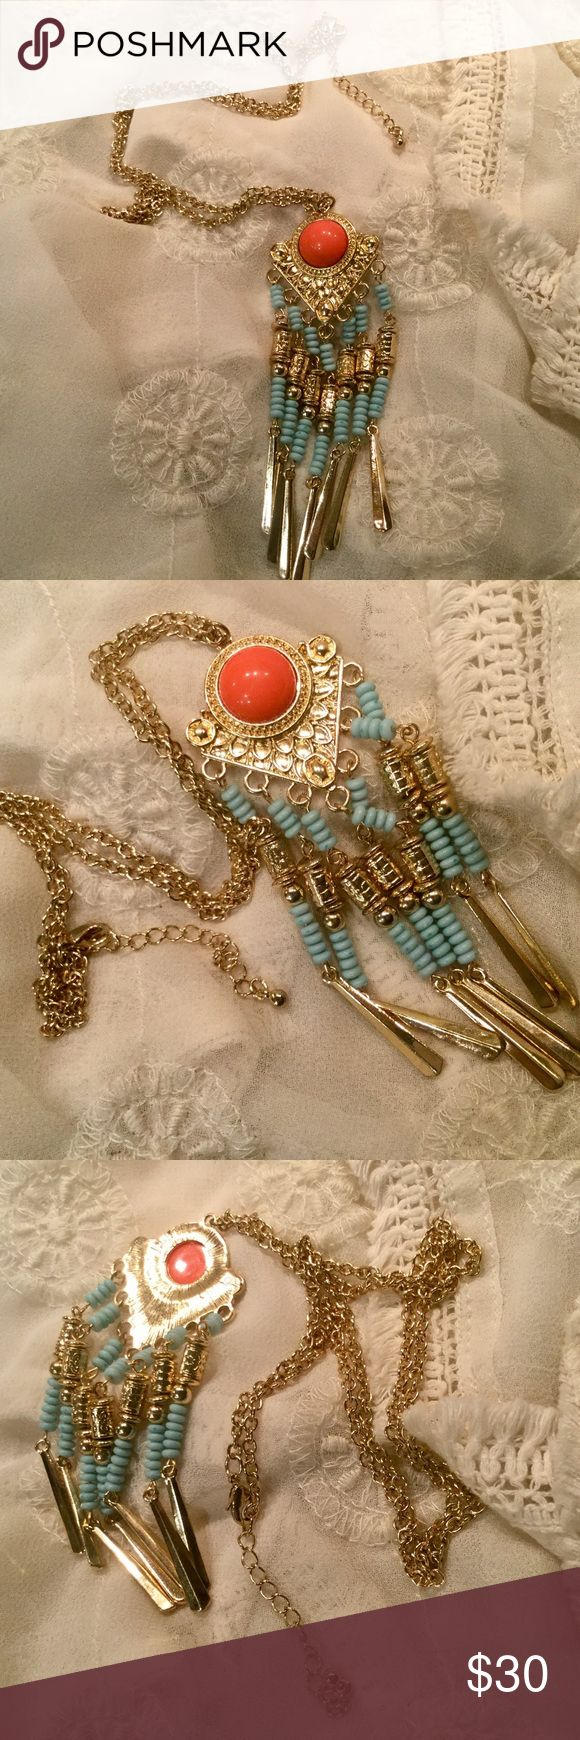 "Charlotte Russe Aztec Gold Aqua Turquoise Necklace 28"" long chain with 2 1/2"" extender.  4 1/2"" long Aztec pendant of gold, round orange bead. And turquoise and gold bead fringe. One pic shows the back of the pendant. NEW never worn Charlotte Russe necklace. Gorgeous. Charlotte Russe Jewelry Necklaces"